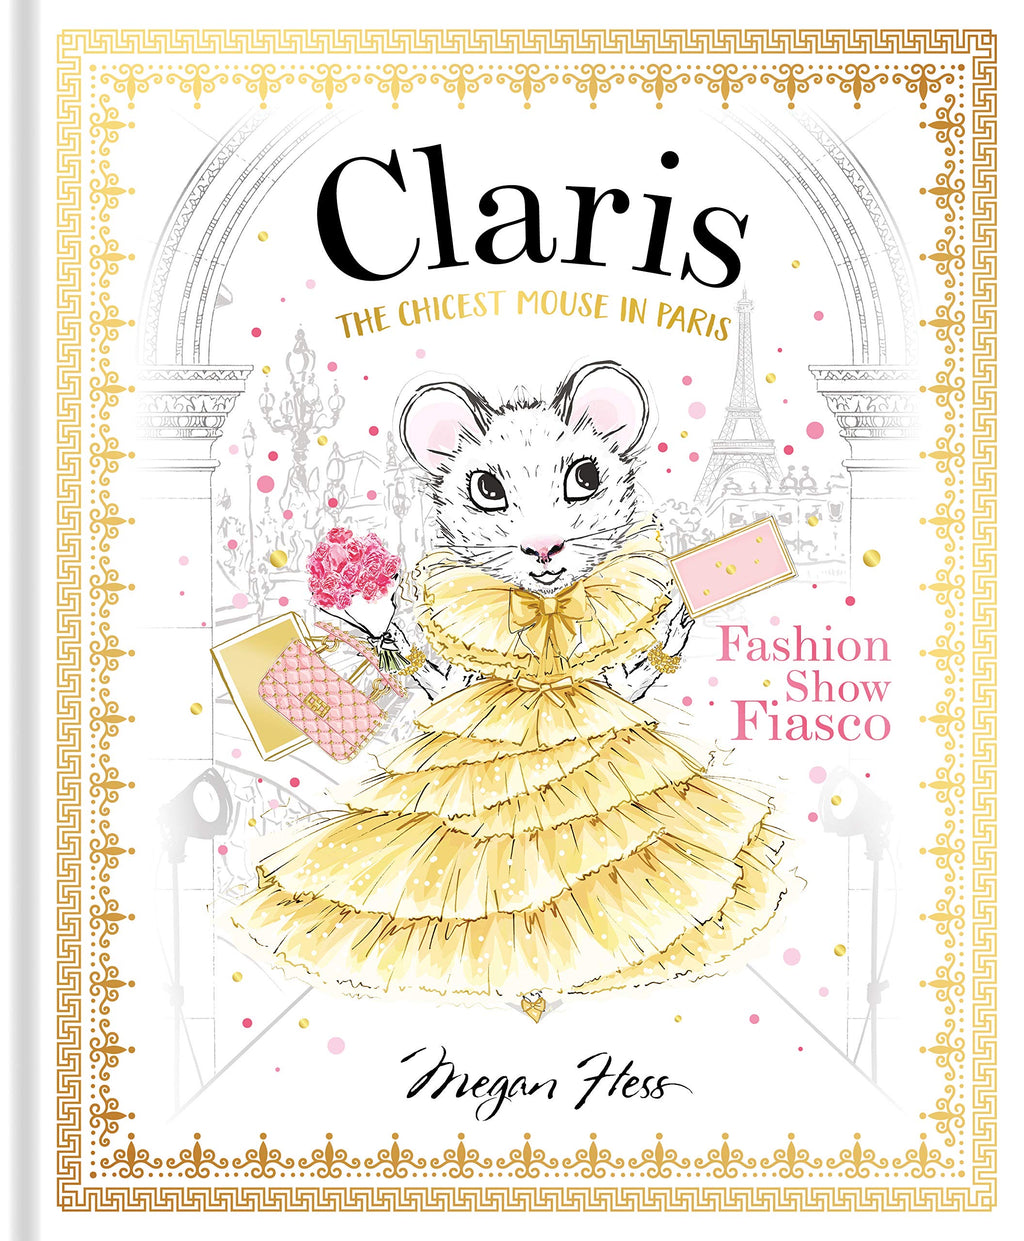 Claris- Fashion Show Fiasco